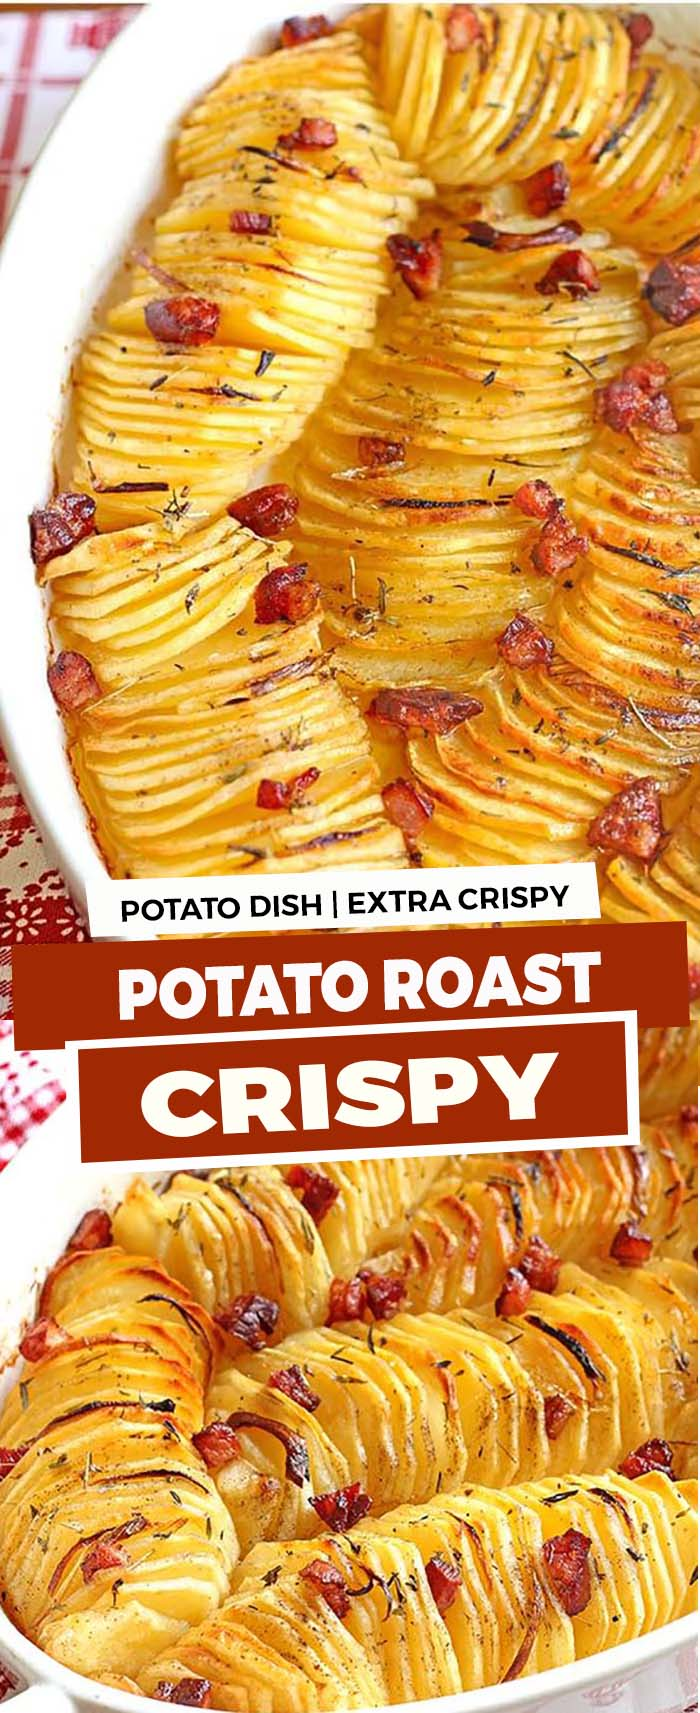 Learn how to make the best crispy roasted potatoes. Crispy on the outside, tender on the inside and flavored with butter, olive oil and thyme.